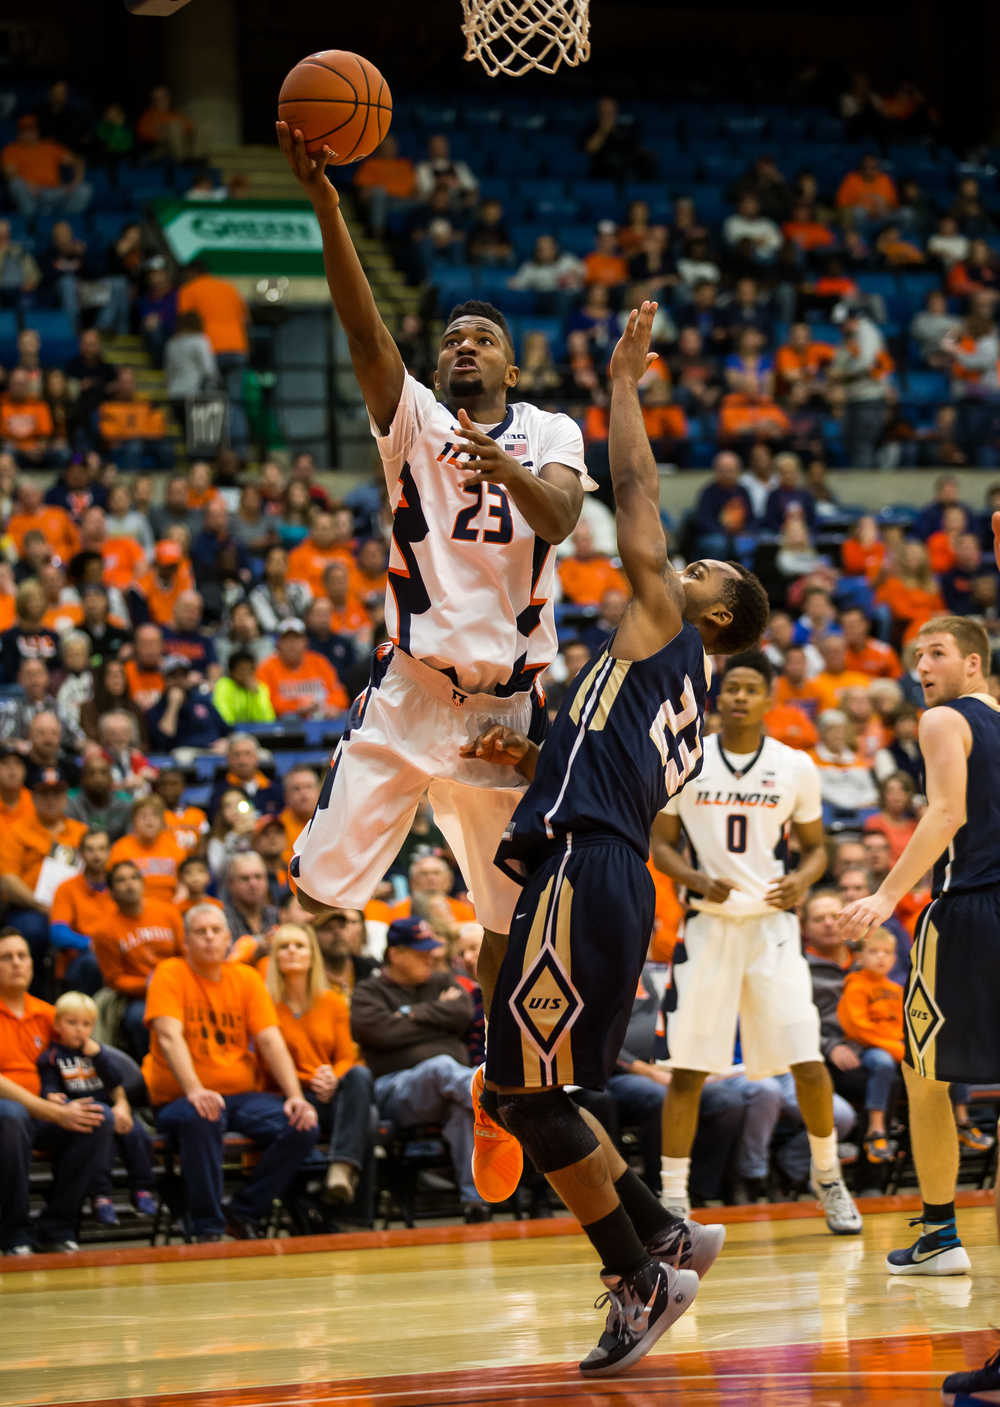 University of Illinois' Aaron Jordan (23) goes up for a basket against University of Illinois Springfield's Mark Weems (23) in the first half during an exhibition game at the Prairie Capital Convention Center, Sunday, Nov. 8, 2015, in Springfield, Ill. Justin L. Fowler/The State Journal-Register